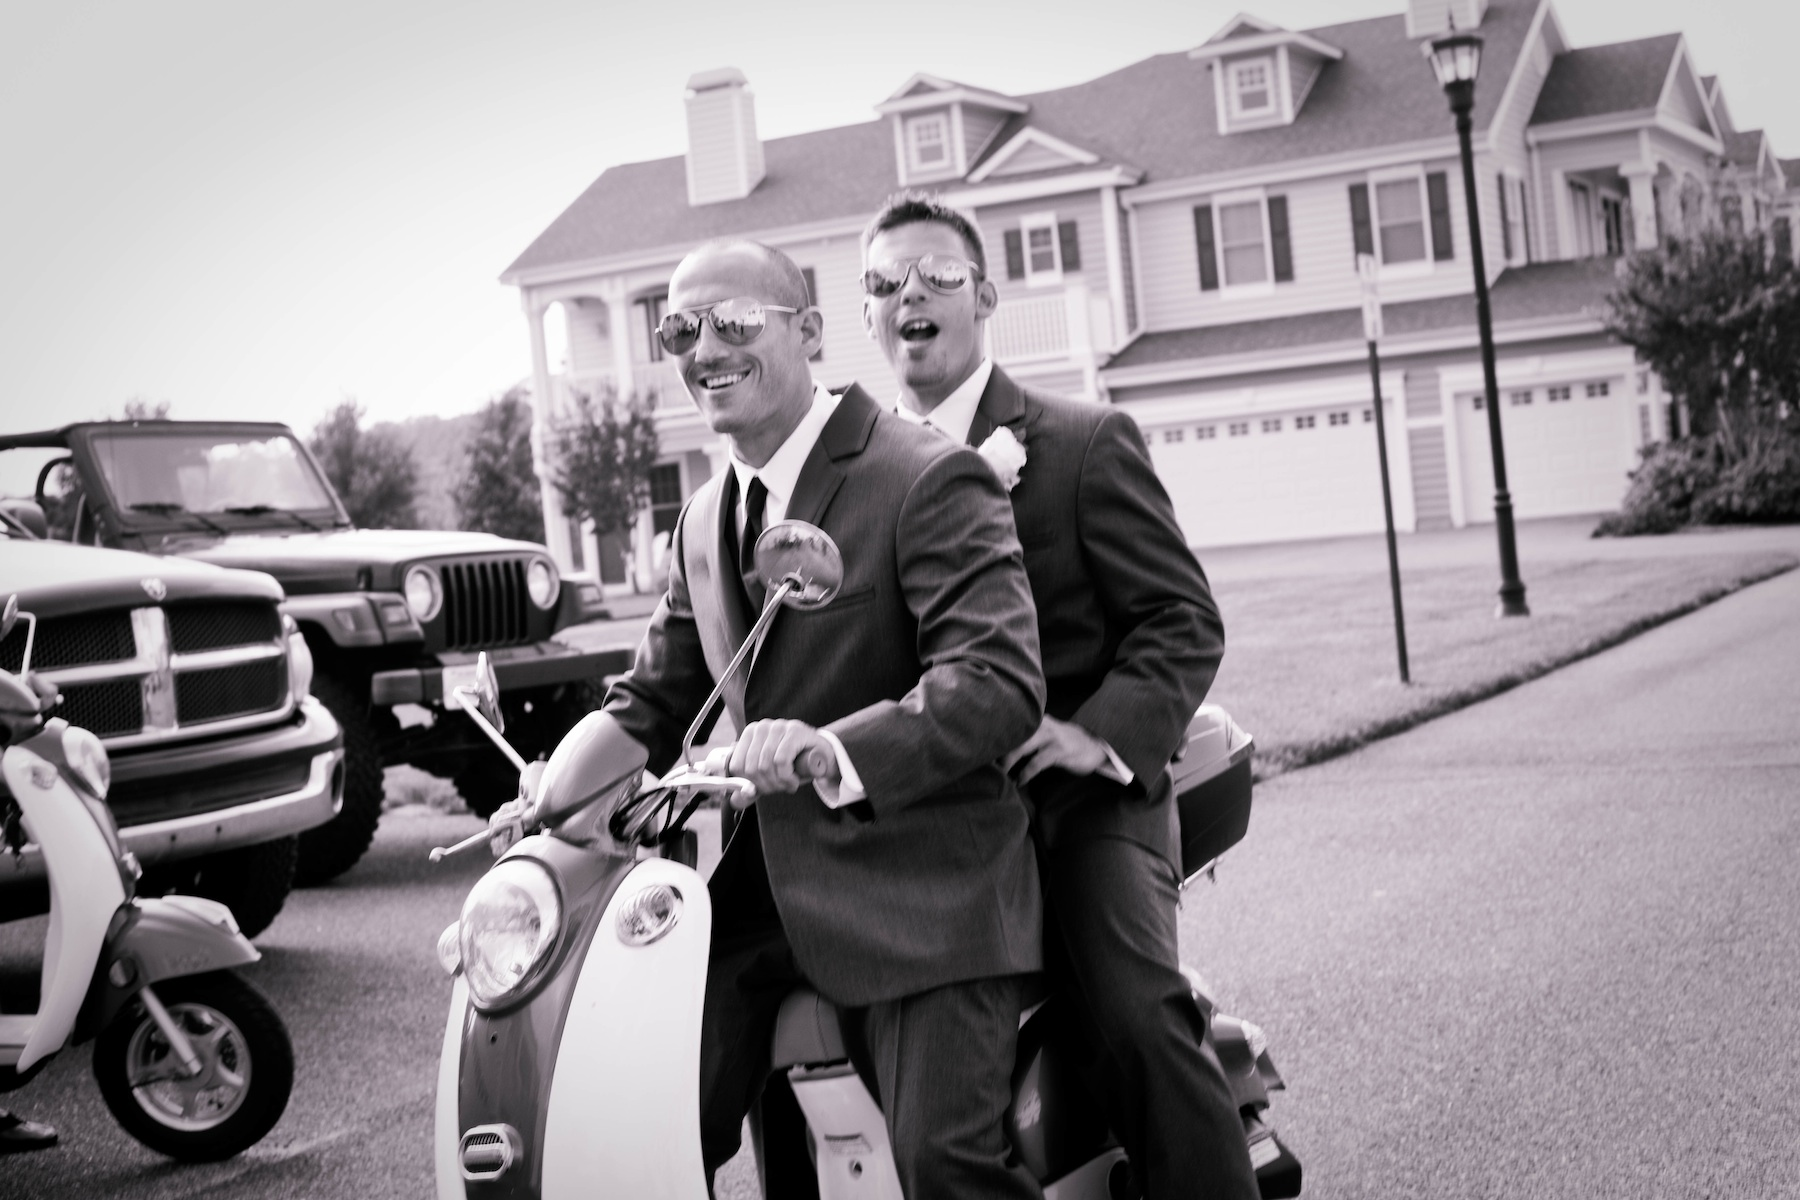 Beach-wedding-in-delaware-cool-groom-groomsmen-transportation.original